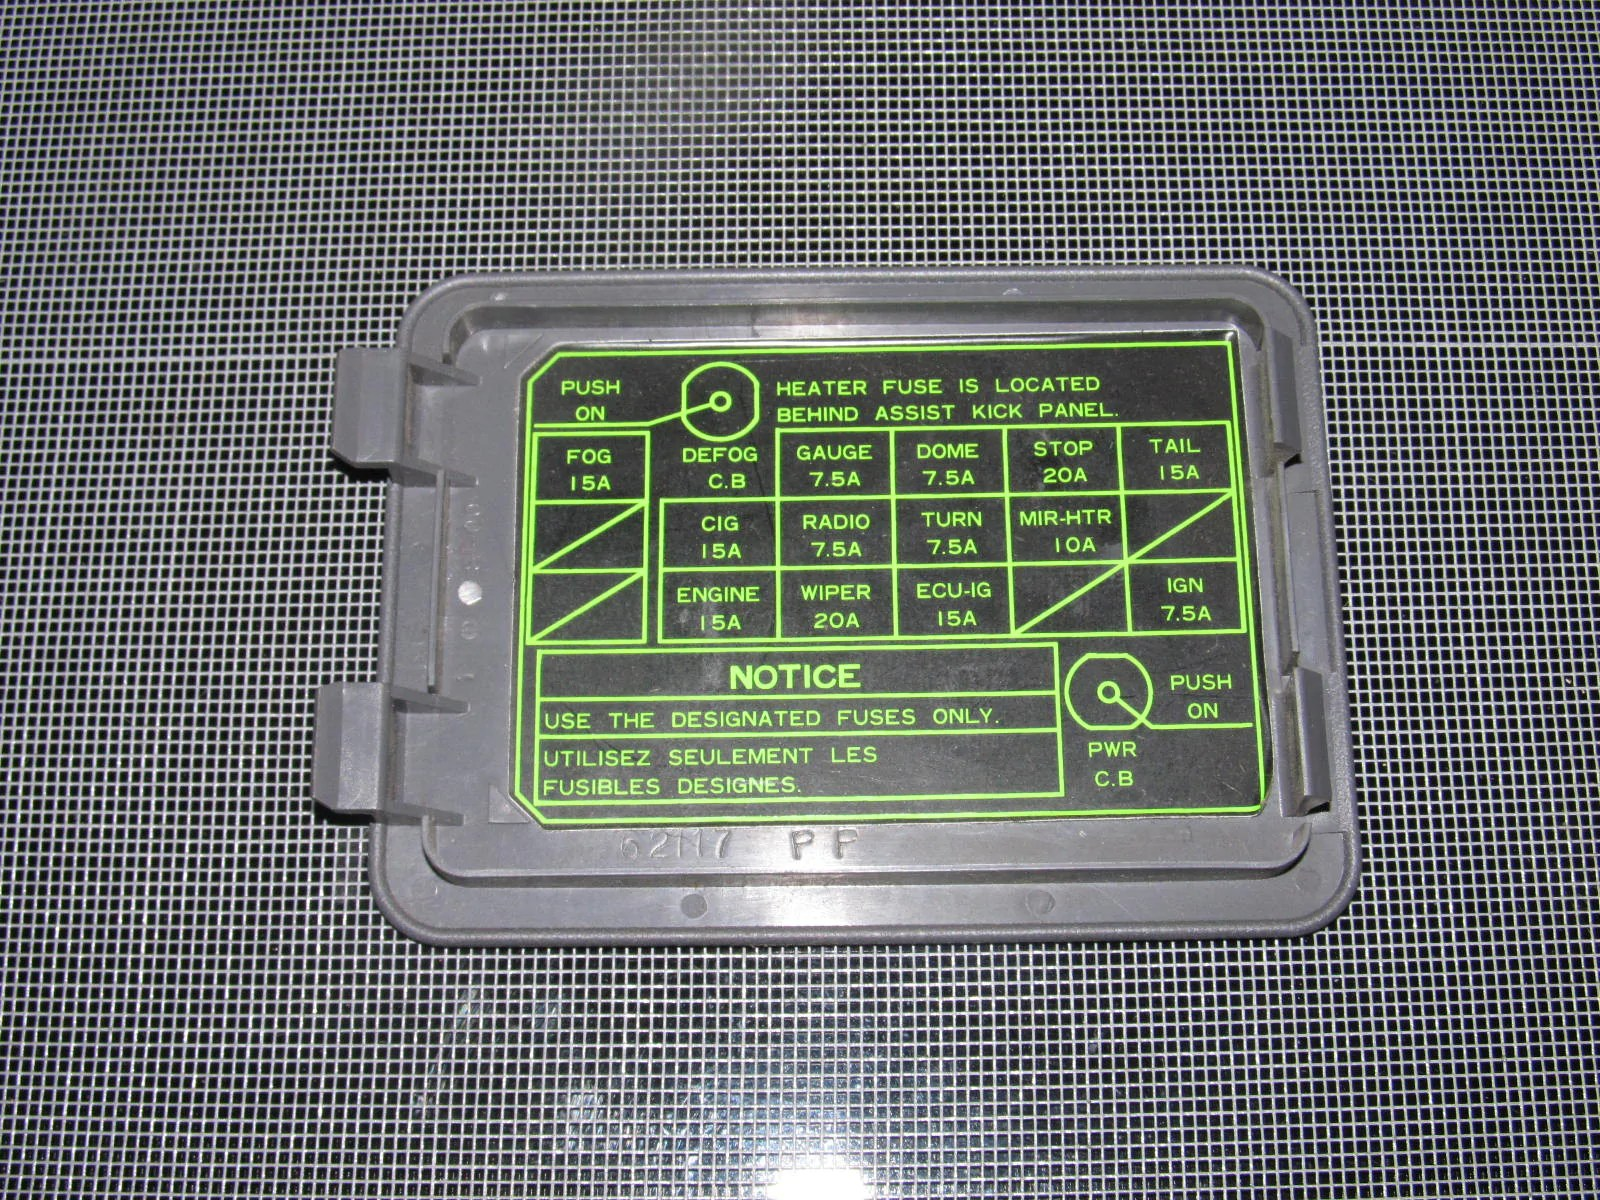 1987 toyota 4runner fuse box explained wiring diagrams 1987 toyota 4runner hood 1987 toyota 4runner fuse [ 1600 x 1200 Pixel ]